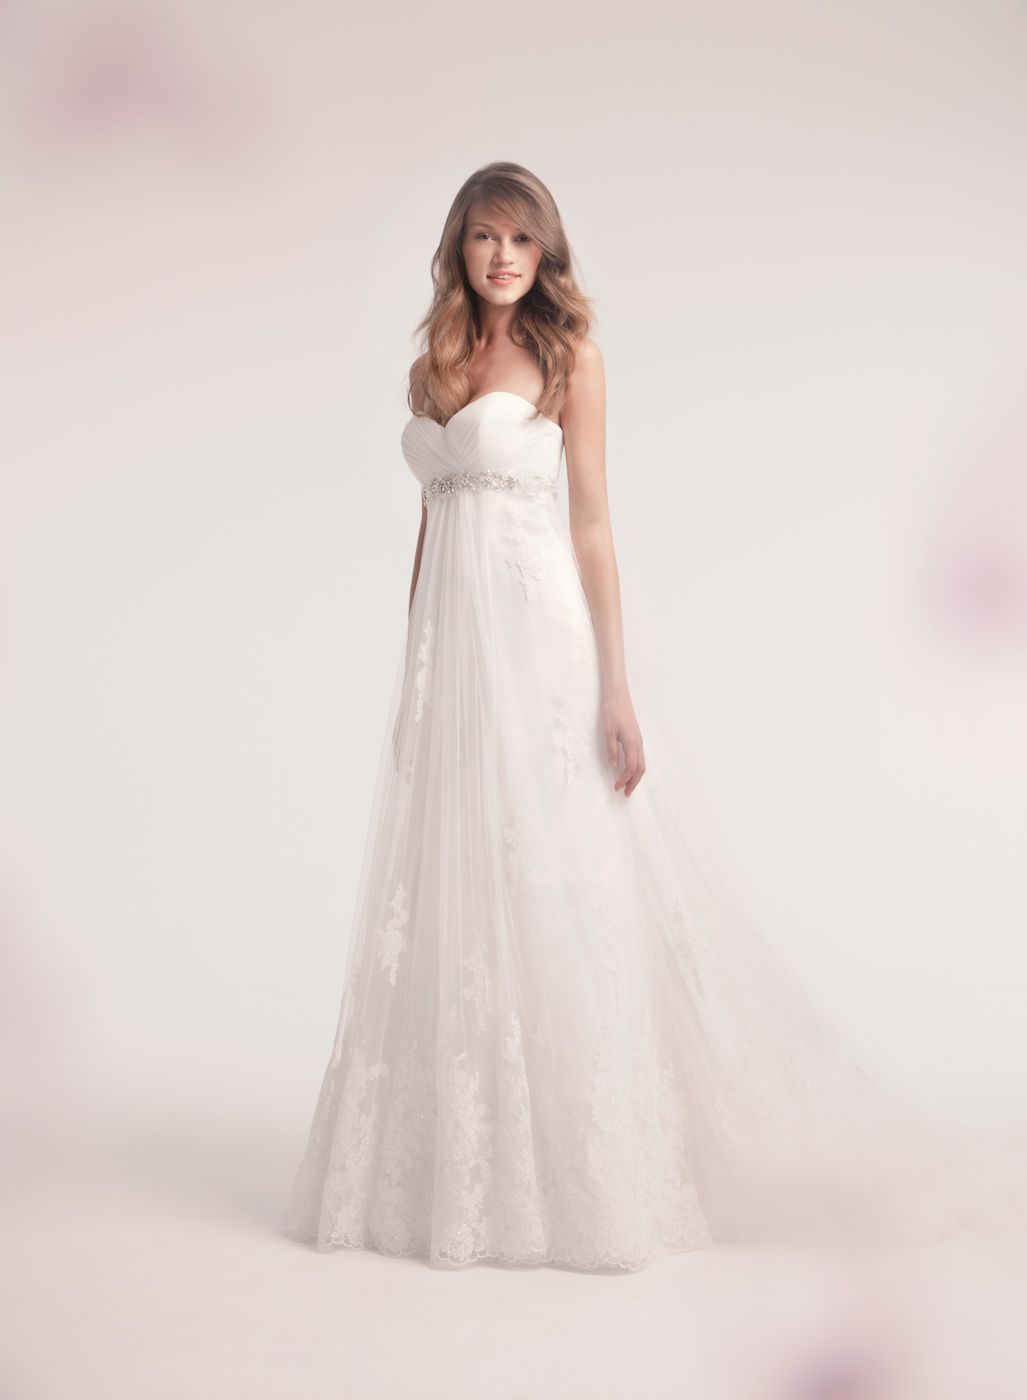 Alita graham aline wedding dress with sweetheart neckline and